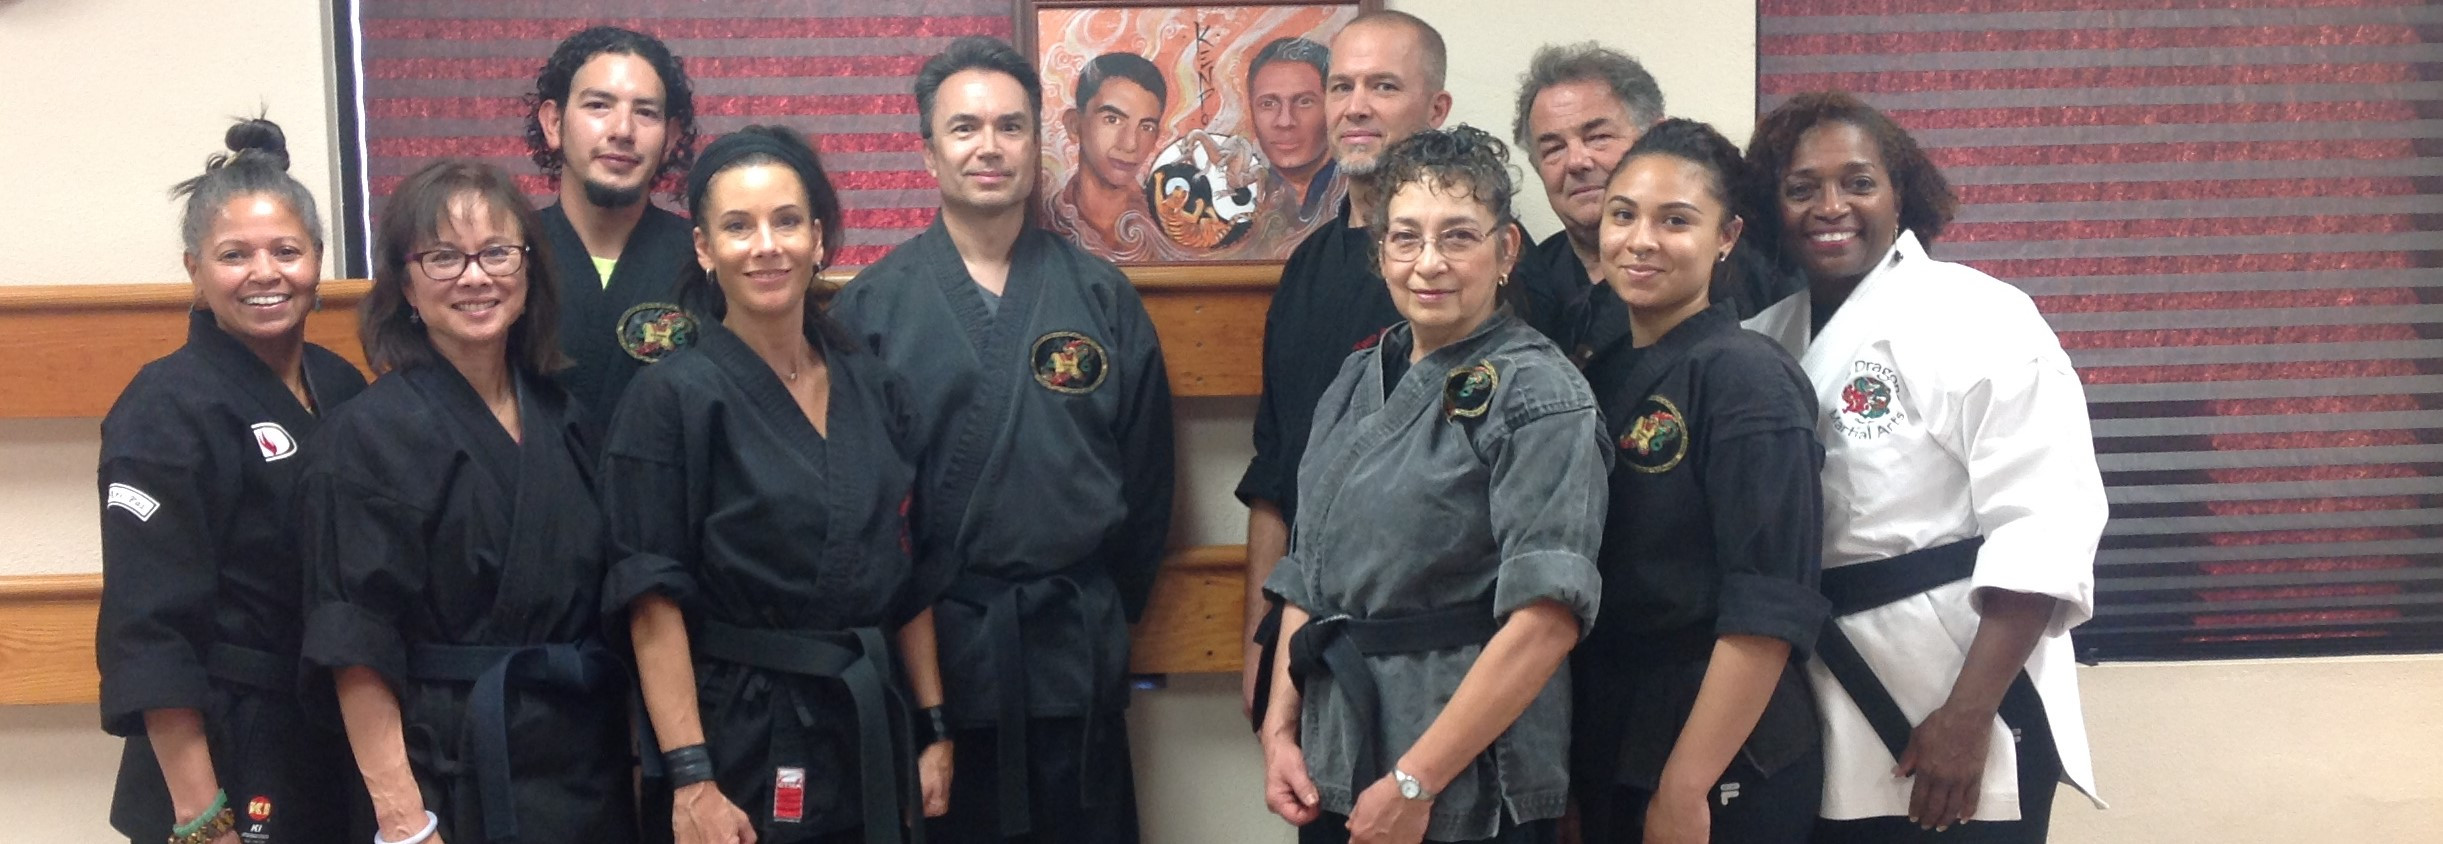 all black belts.jpg